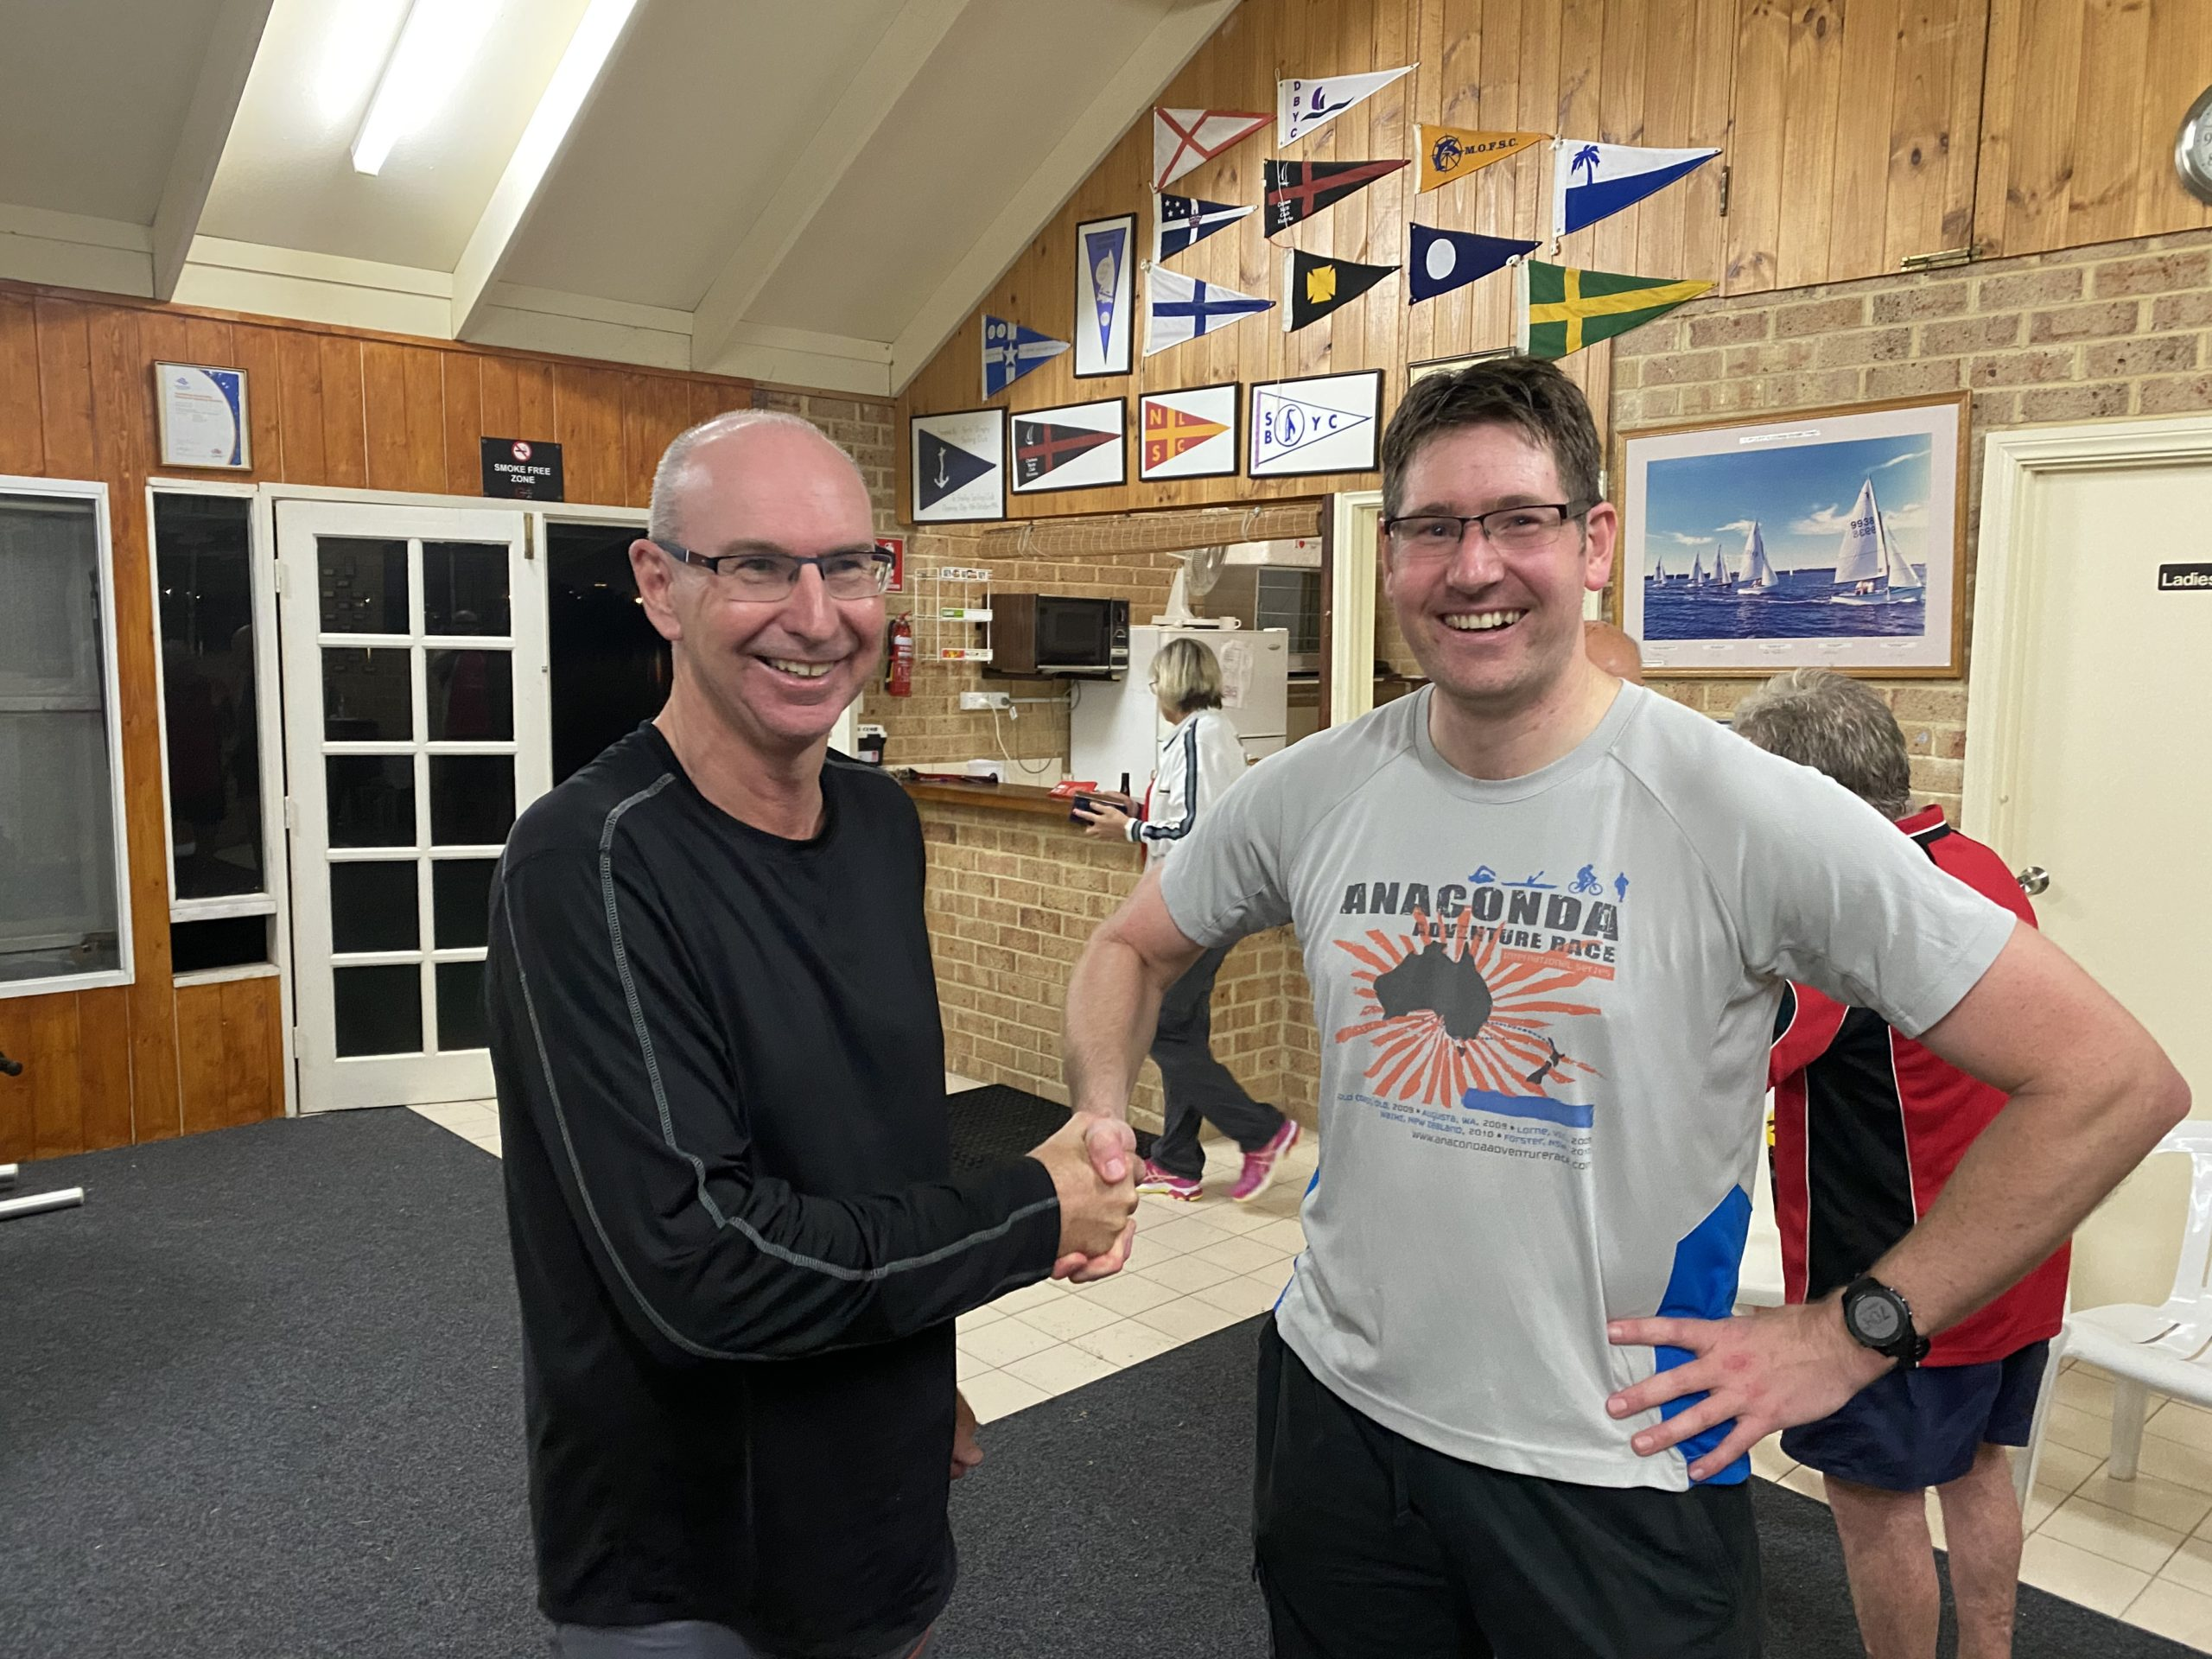 Tuesday 18th May 2021 : Tonight's photo shows club Treasurer David Urquhart presenting tonight's winner Peter Gigengack with a movie voucher.